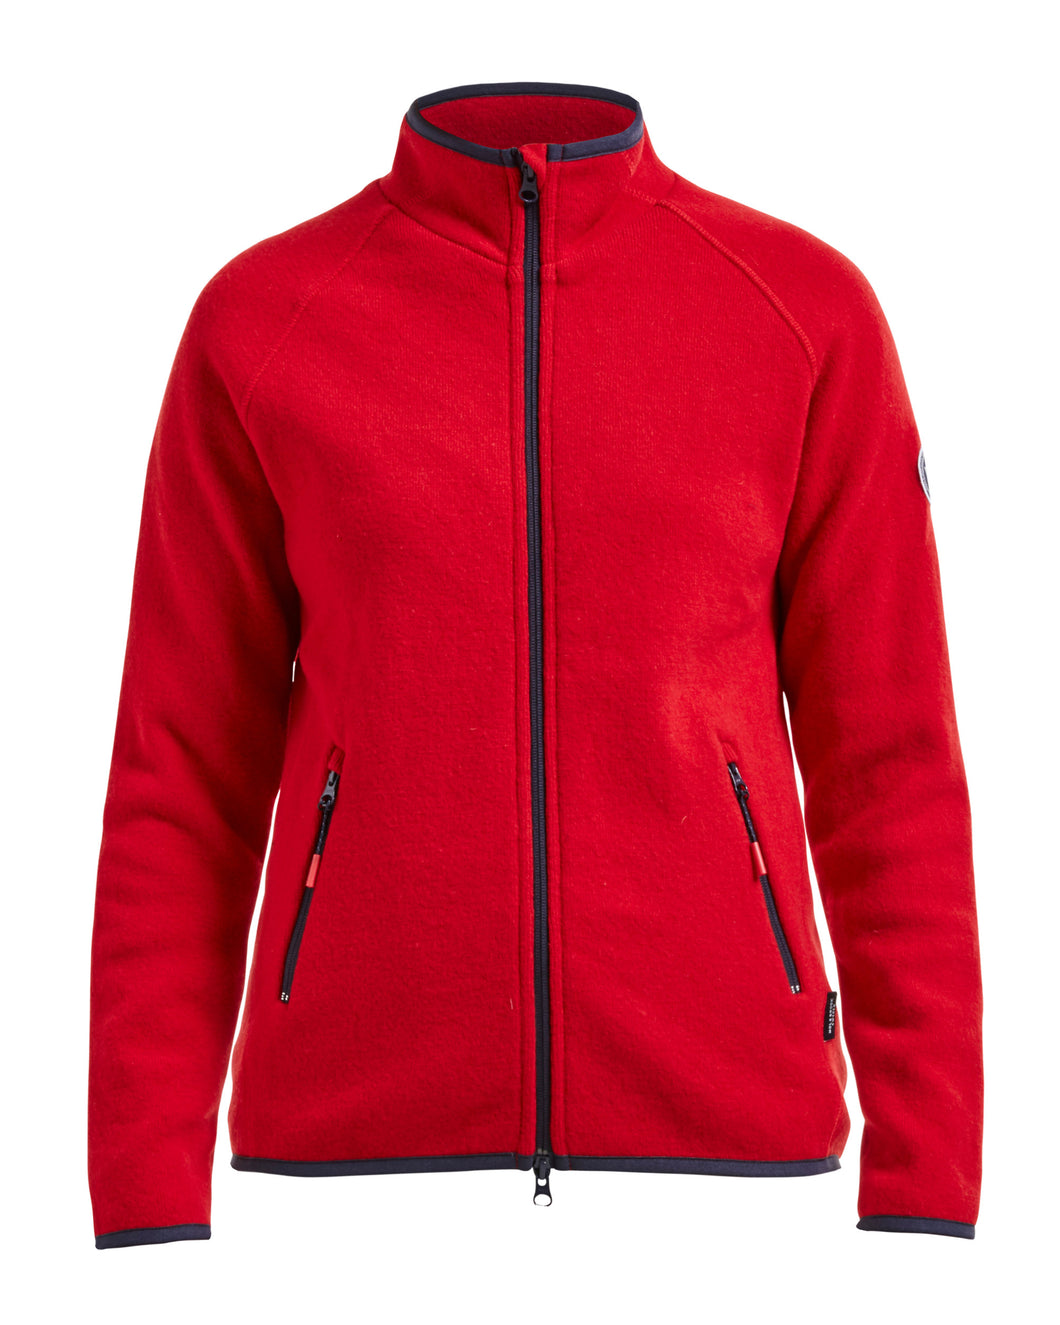 Holebrook Sweden Maggan Fullzip Windproof Jacket